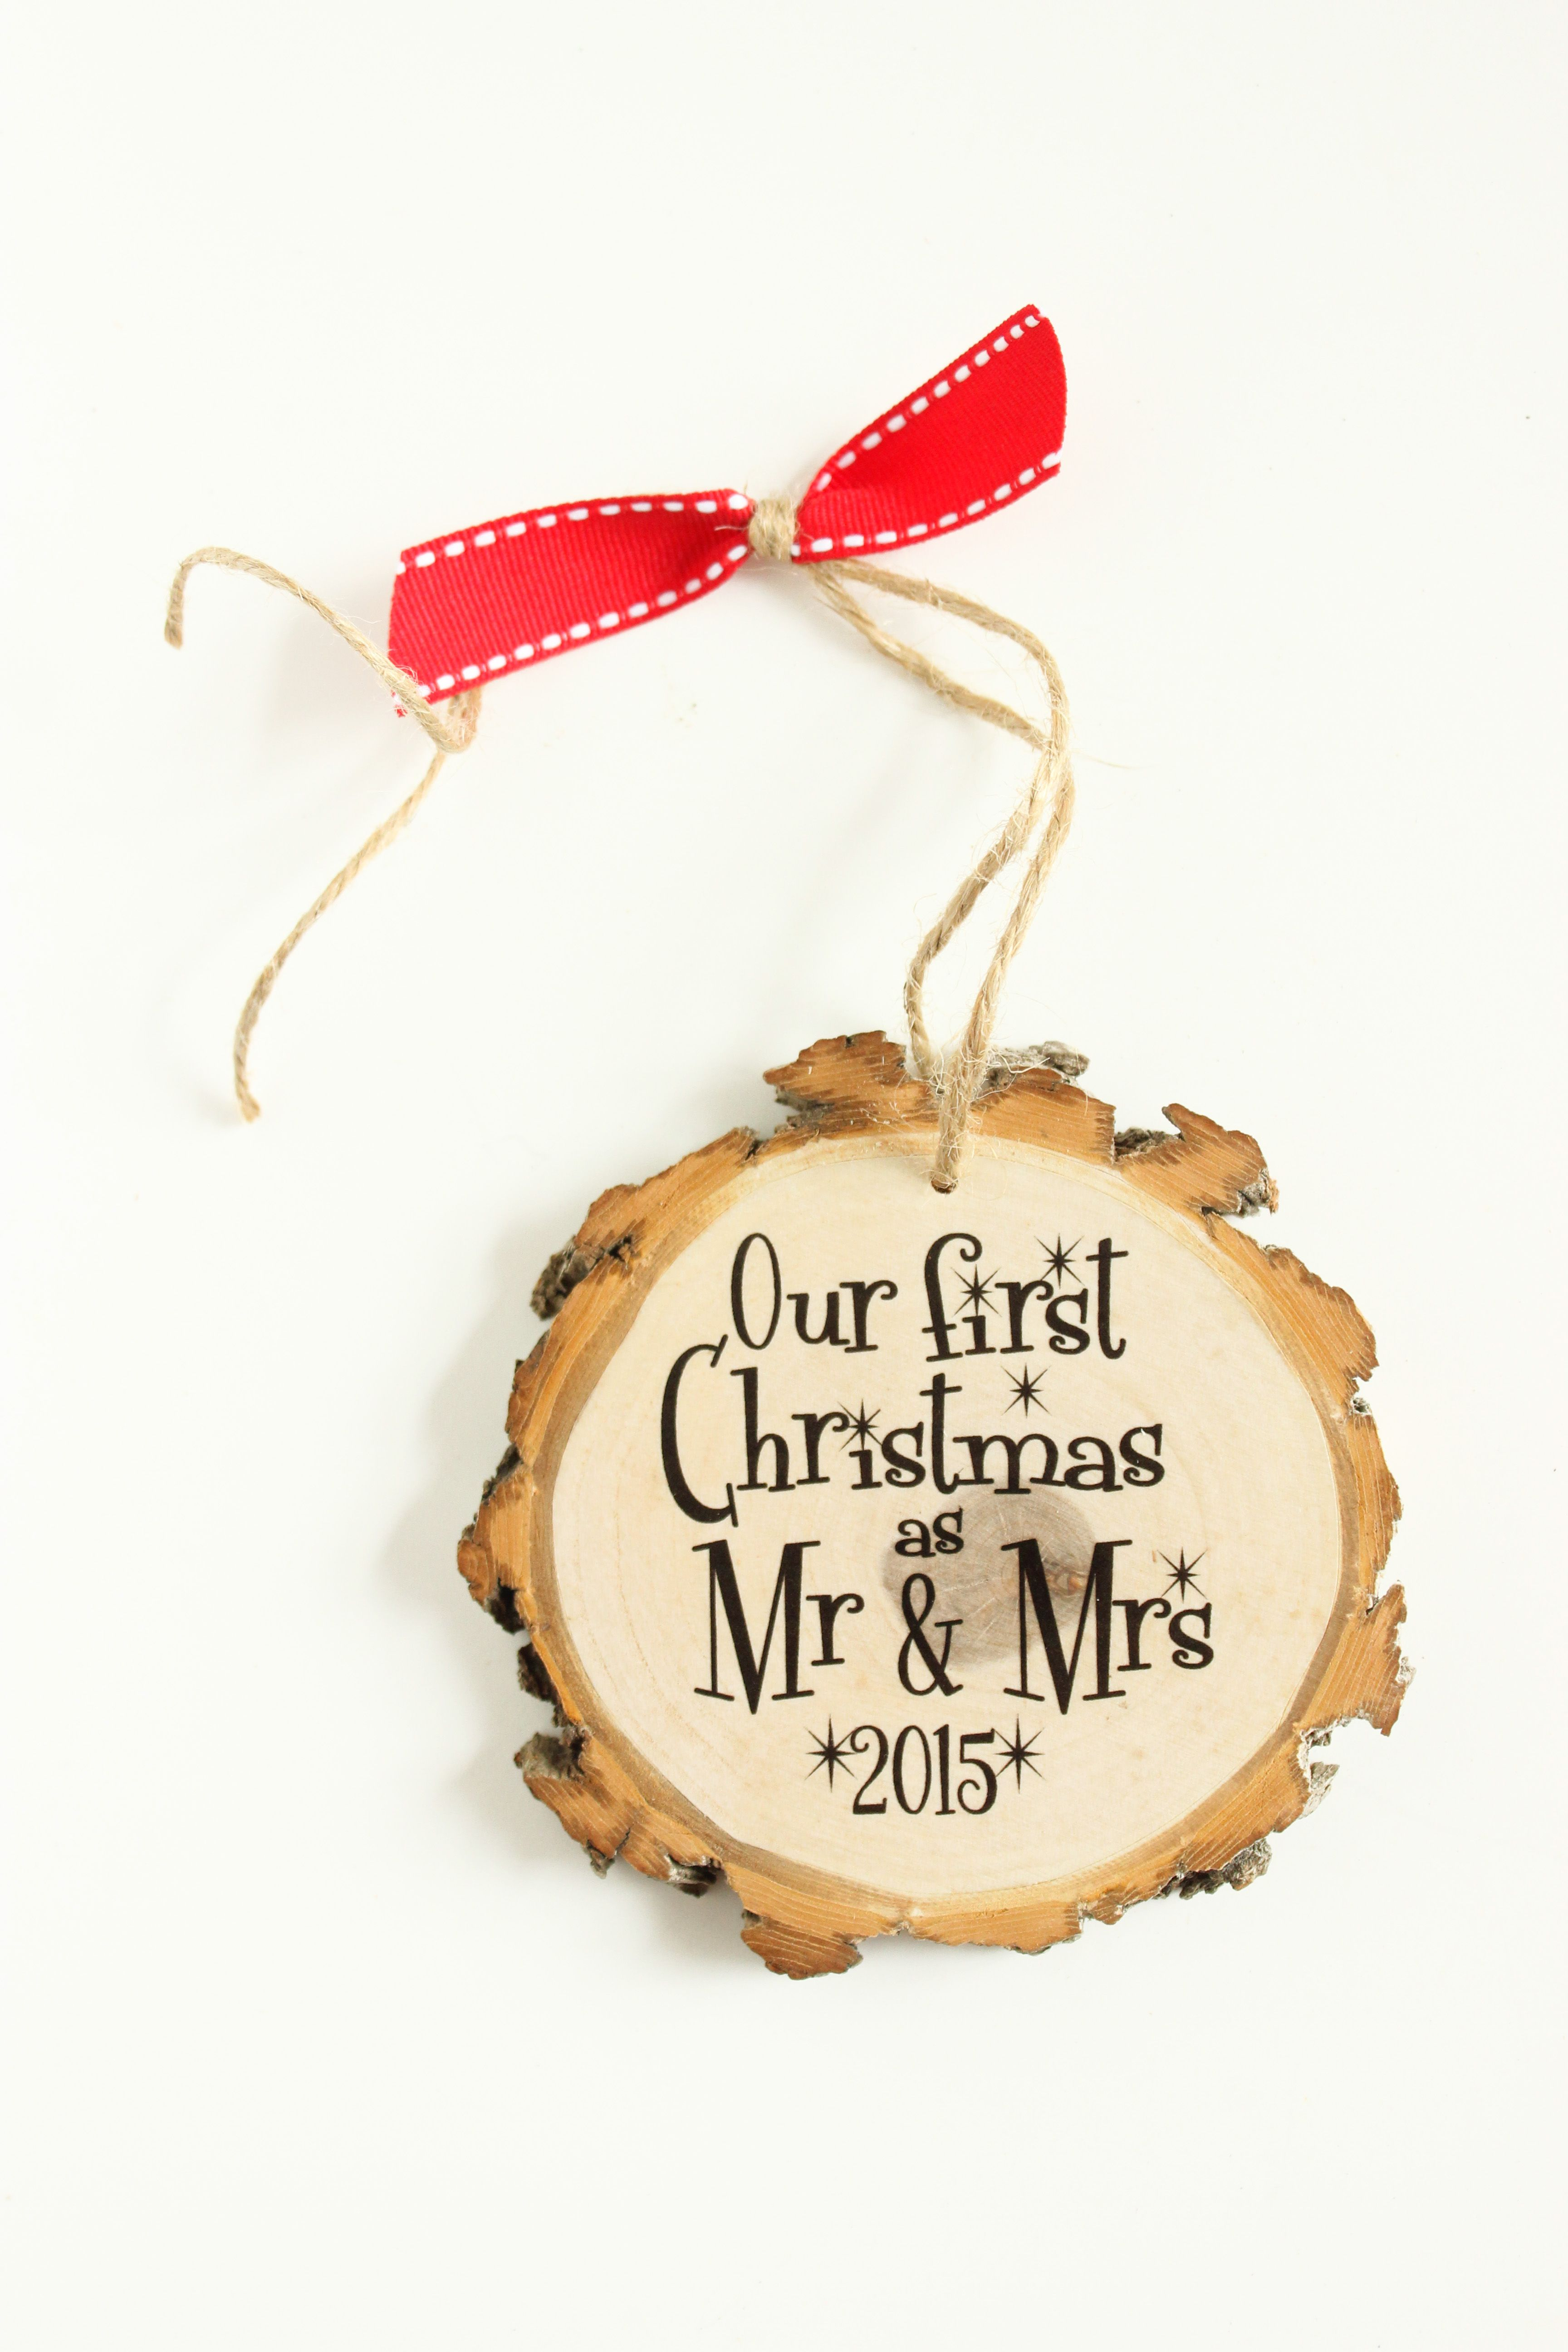 Wedding ornaments - Wedding Gift Ornaments Wedding Ornaments Newlyweds First Christmas Holiday Ornament Wedding Gift Gift Tag Wedding